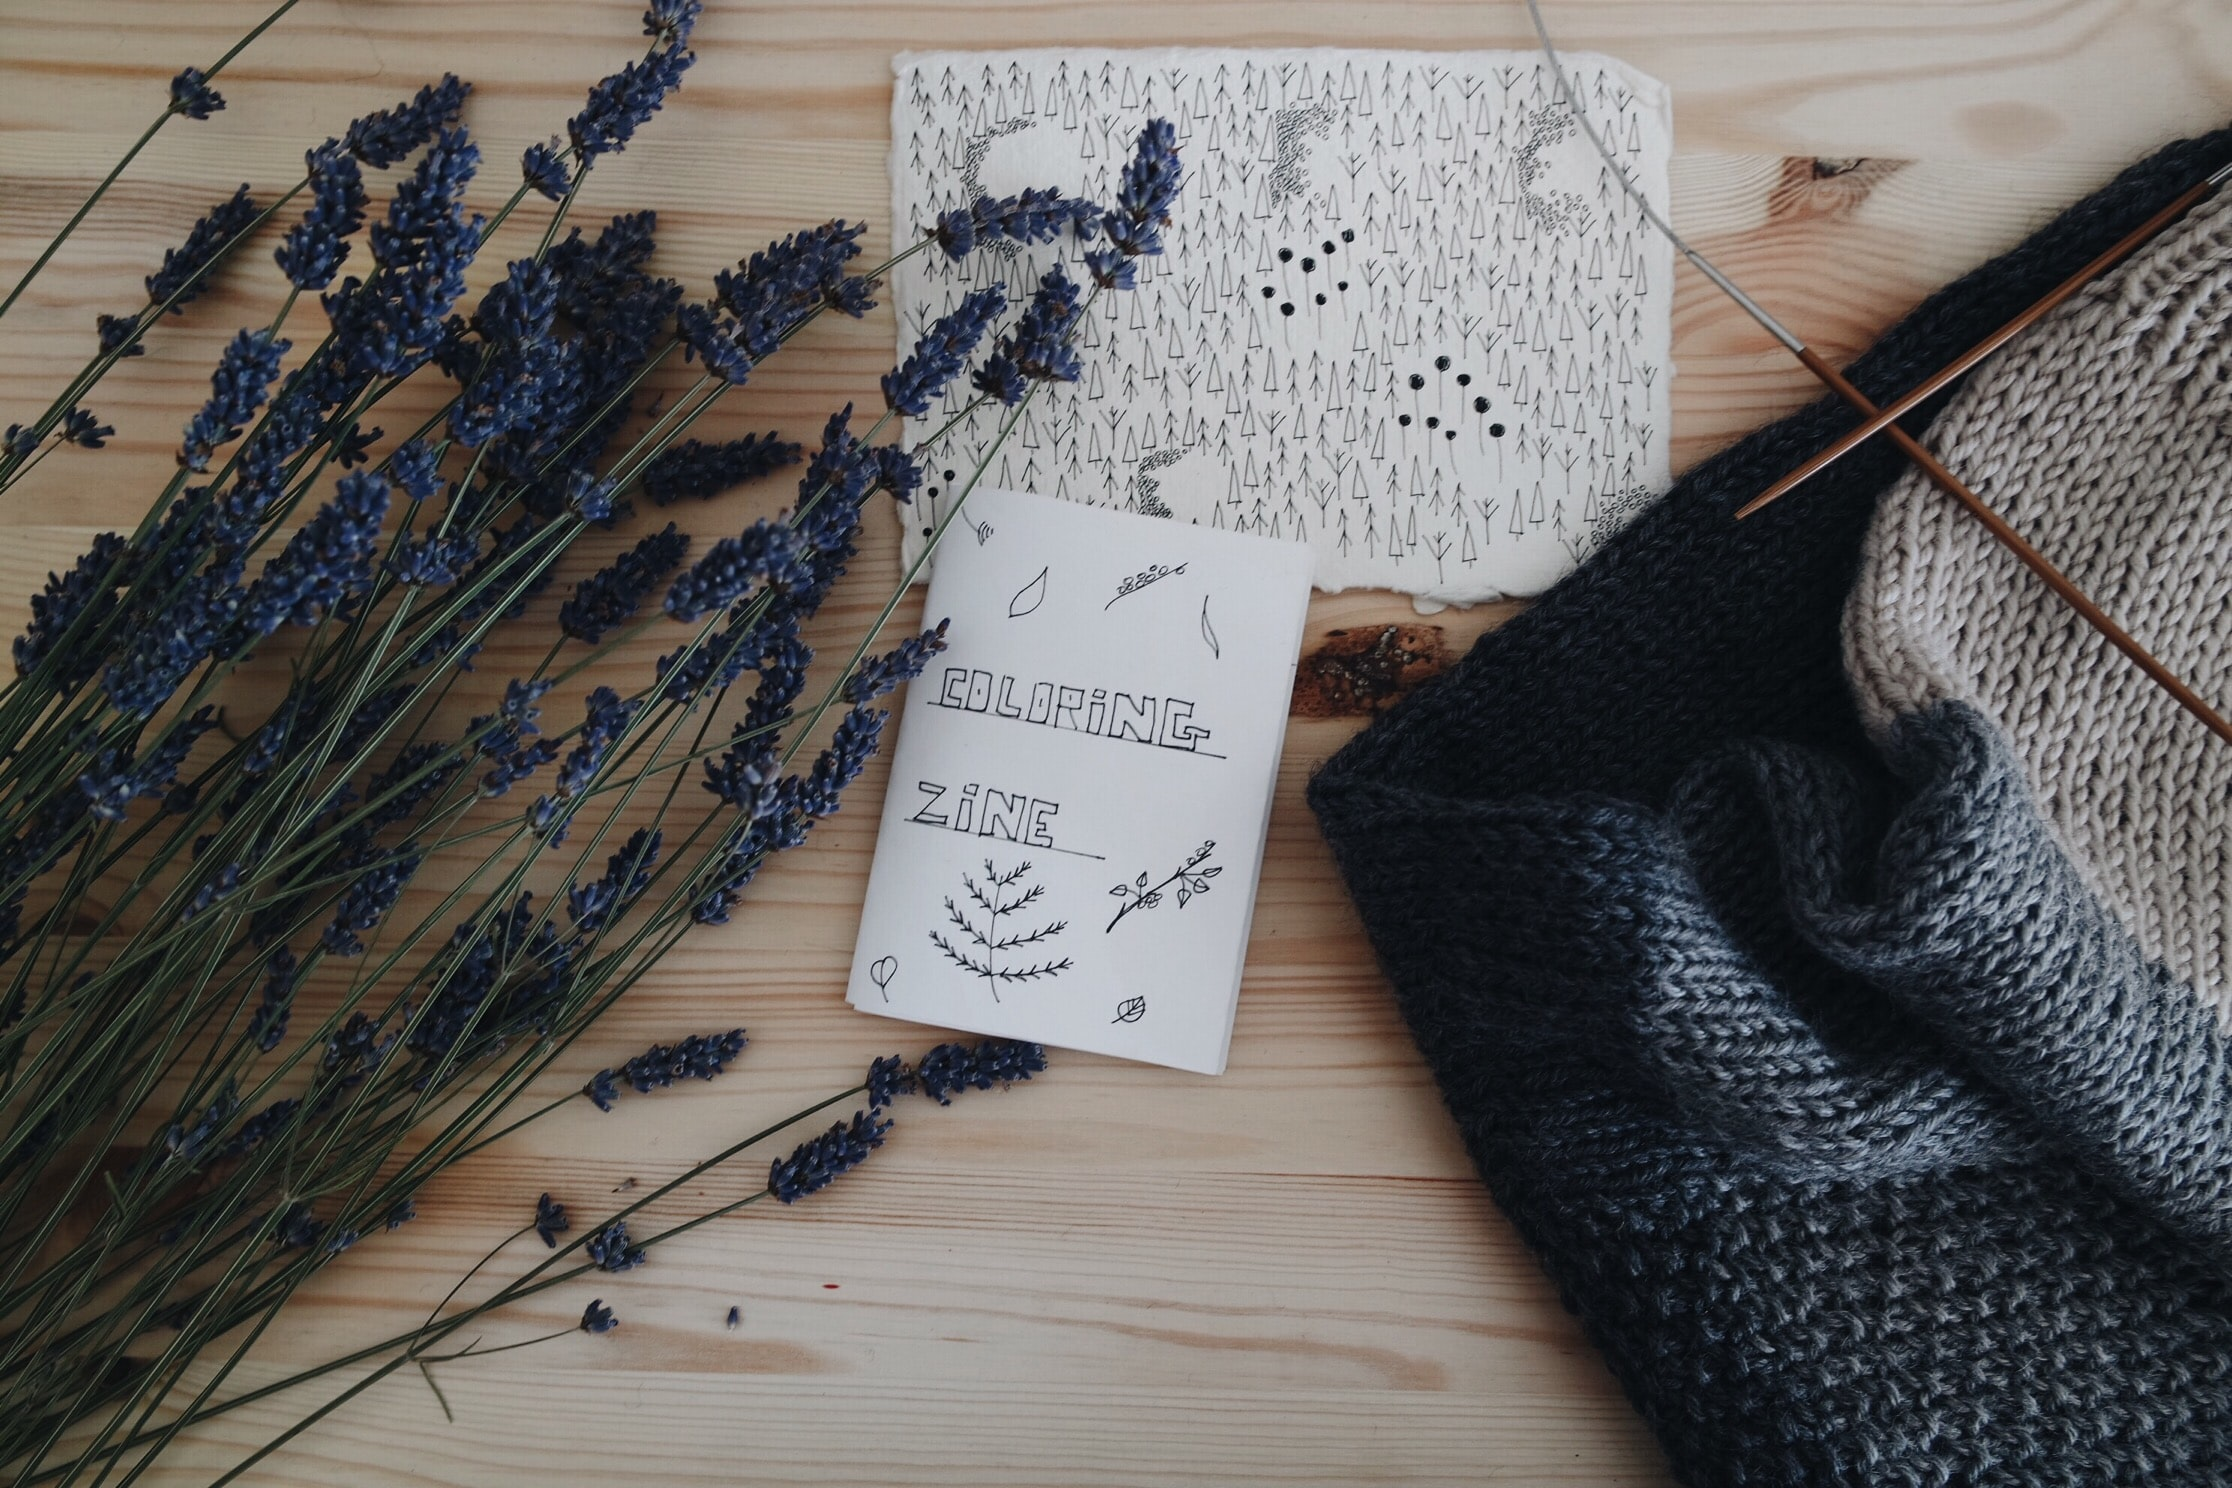 Flat lay of artist's desk with coloring book zine, lavender plants, and a scarf